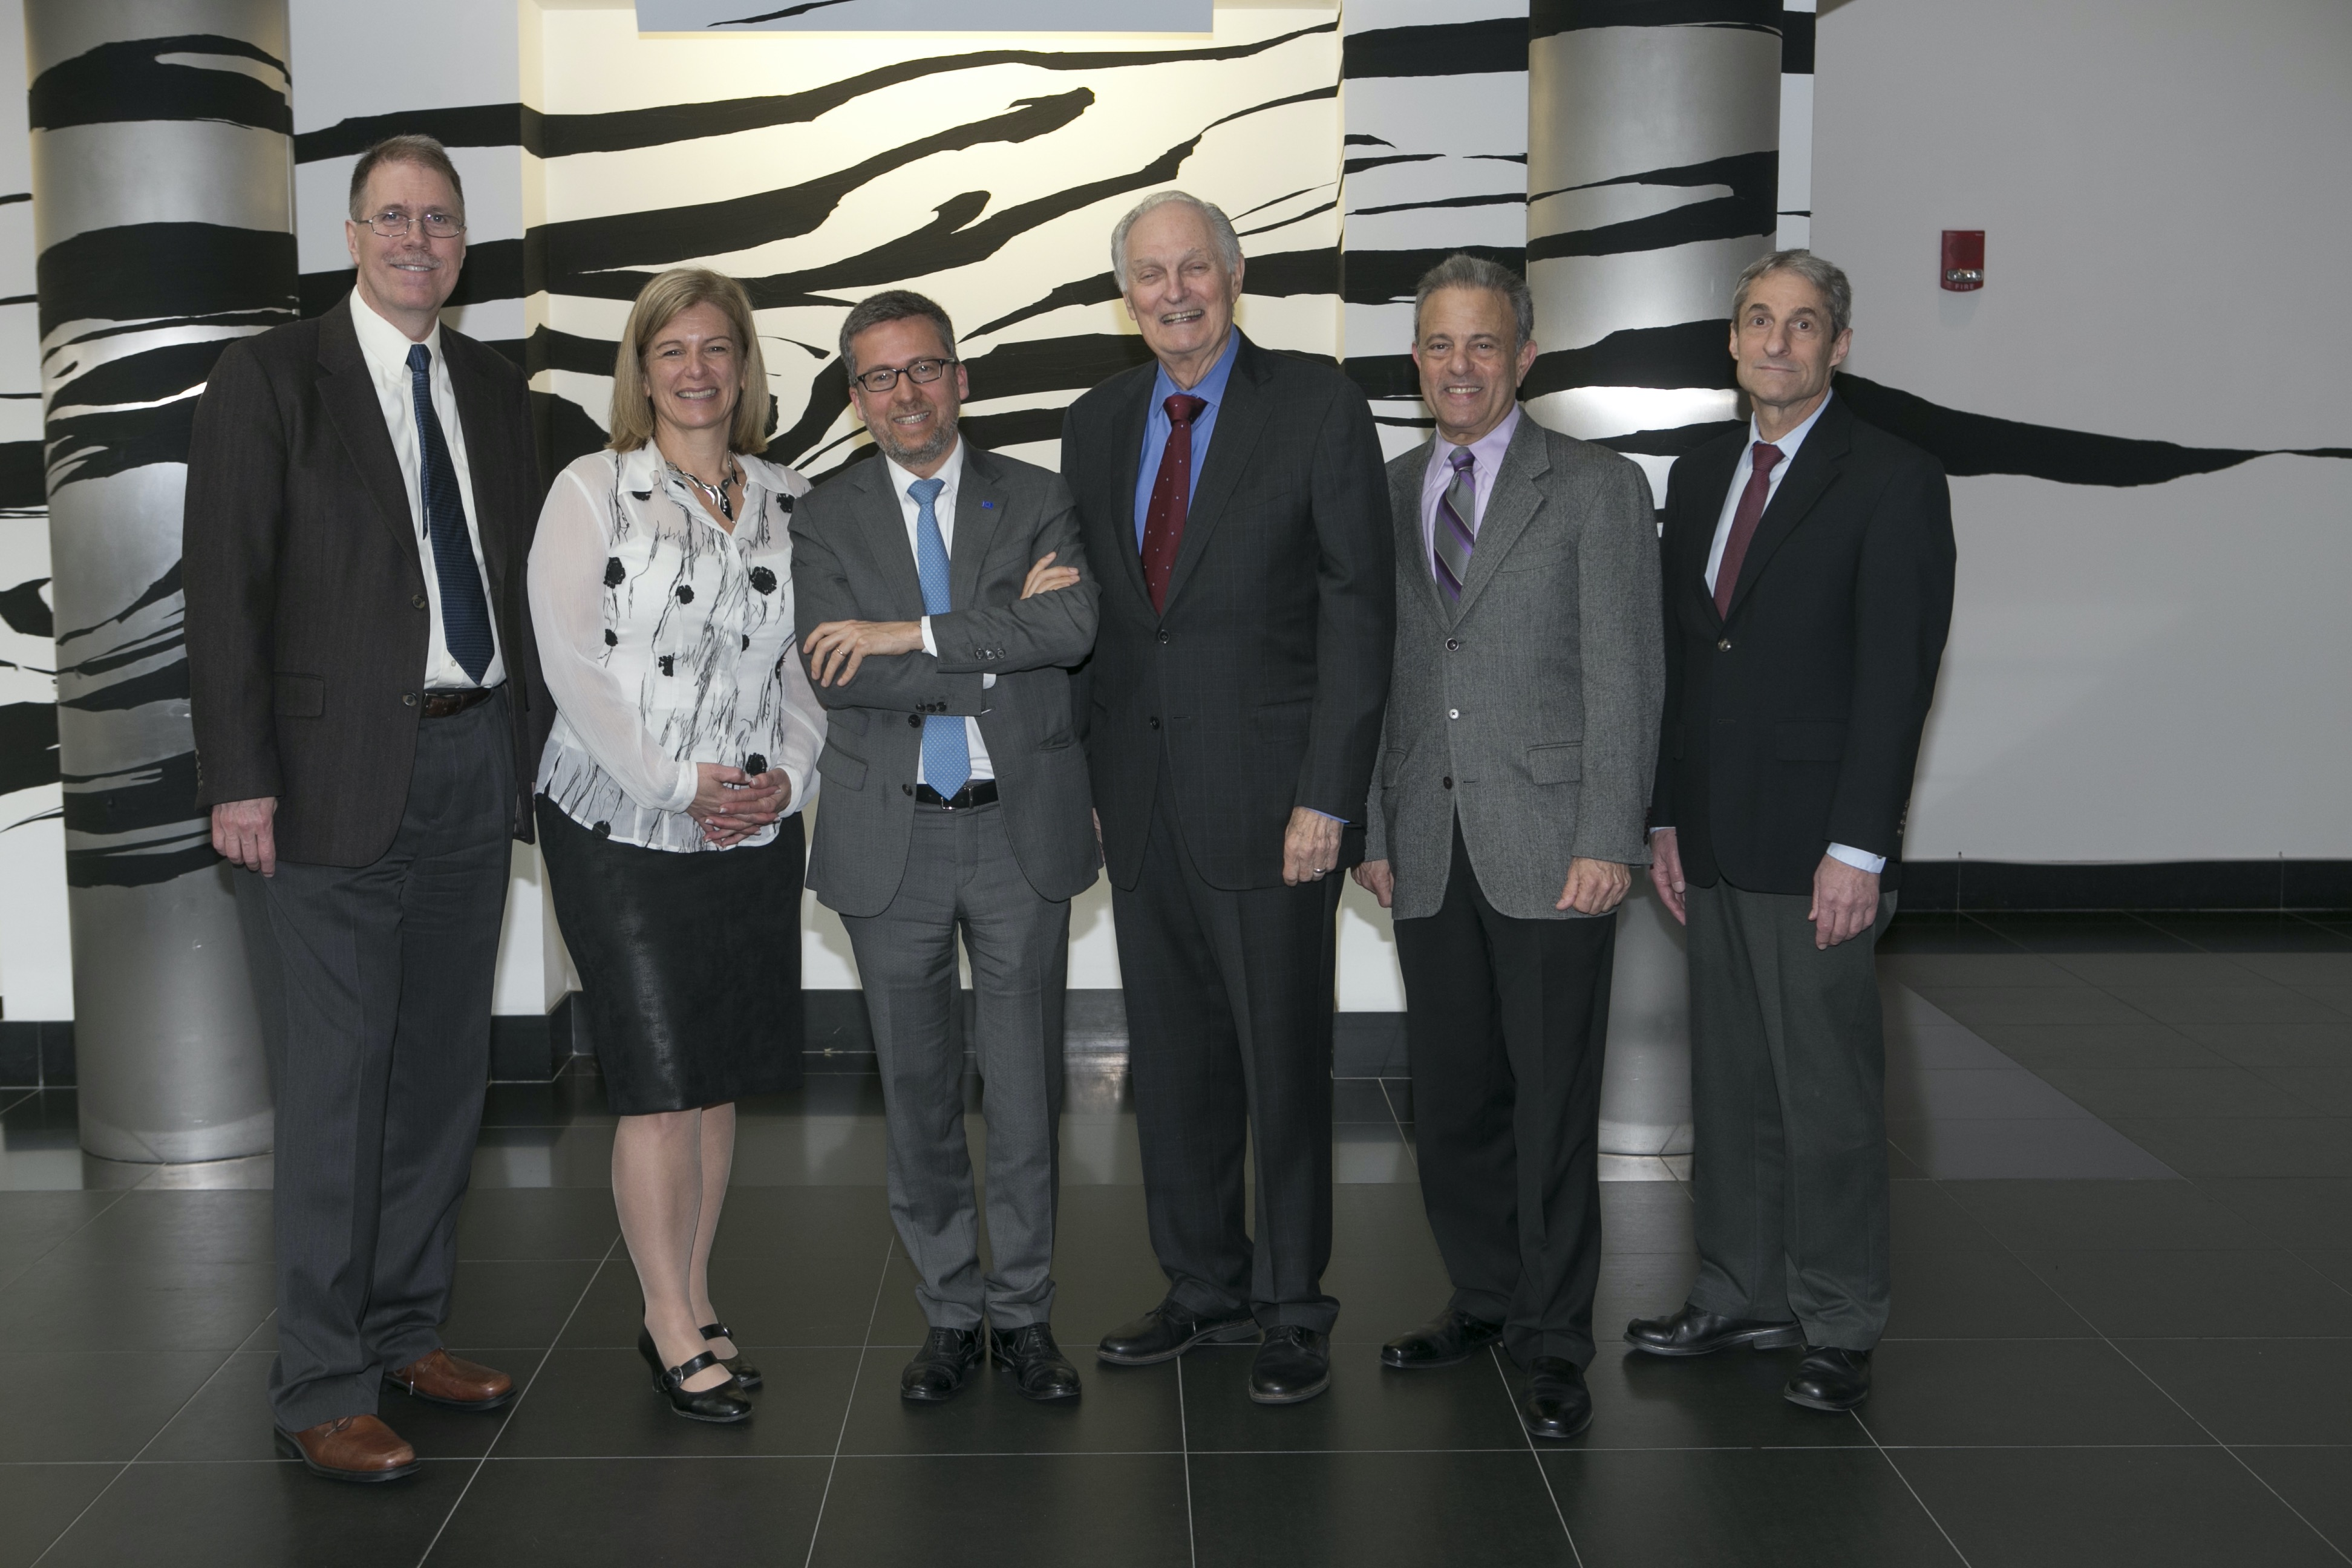 Alda Center Hosts Partnership Discussion with Carlos Moedas, European Commissioner of Research, Science, and Innovation